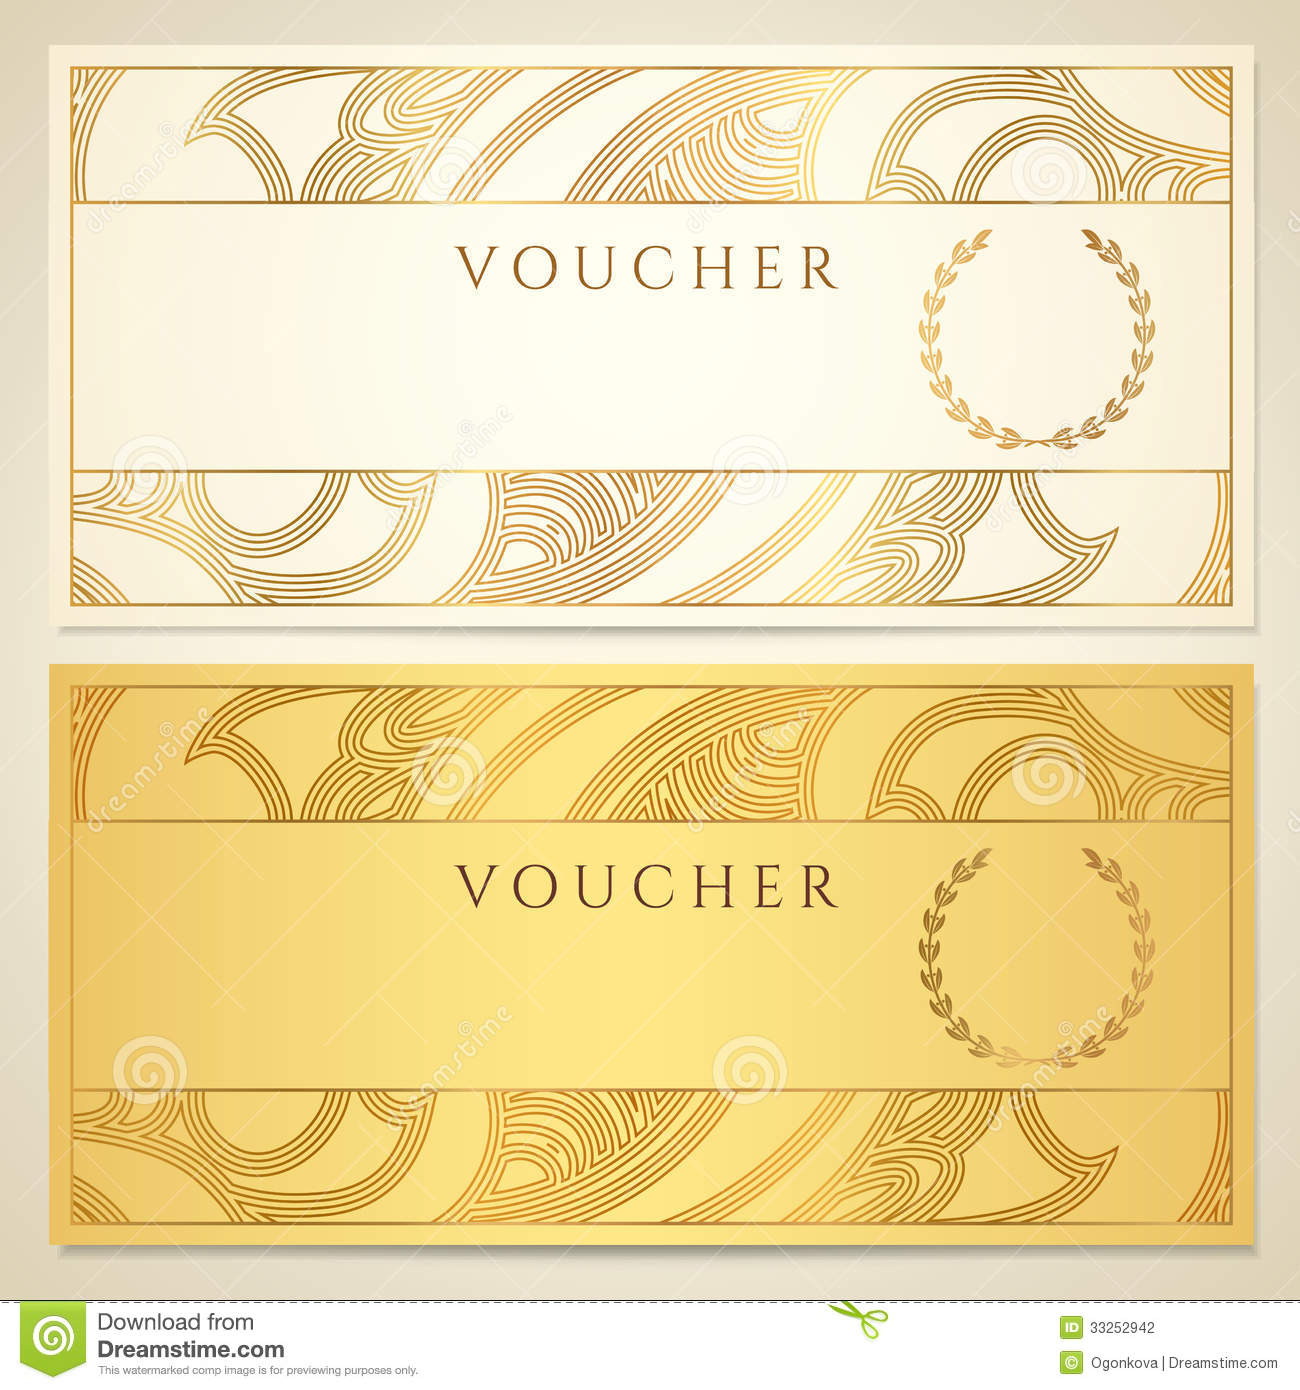 Voucher, Gift Certificate, Coupon Template. Stock Photo Image